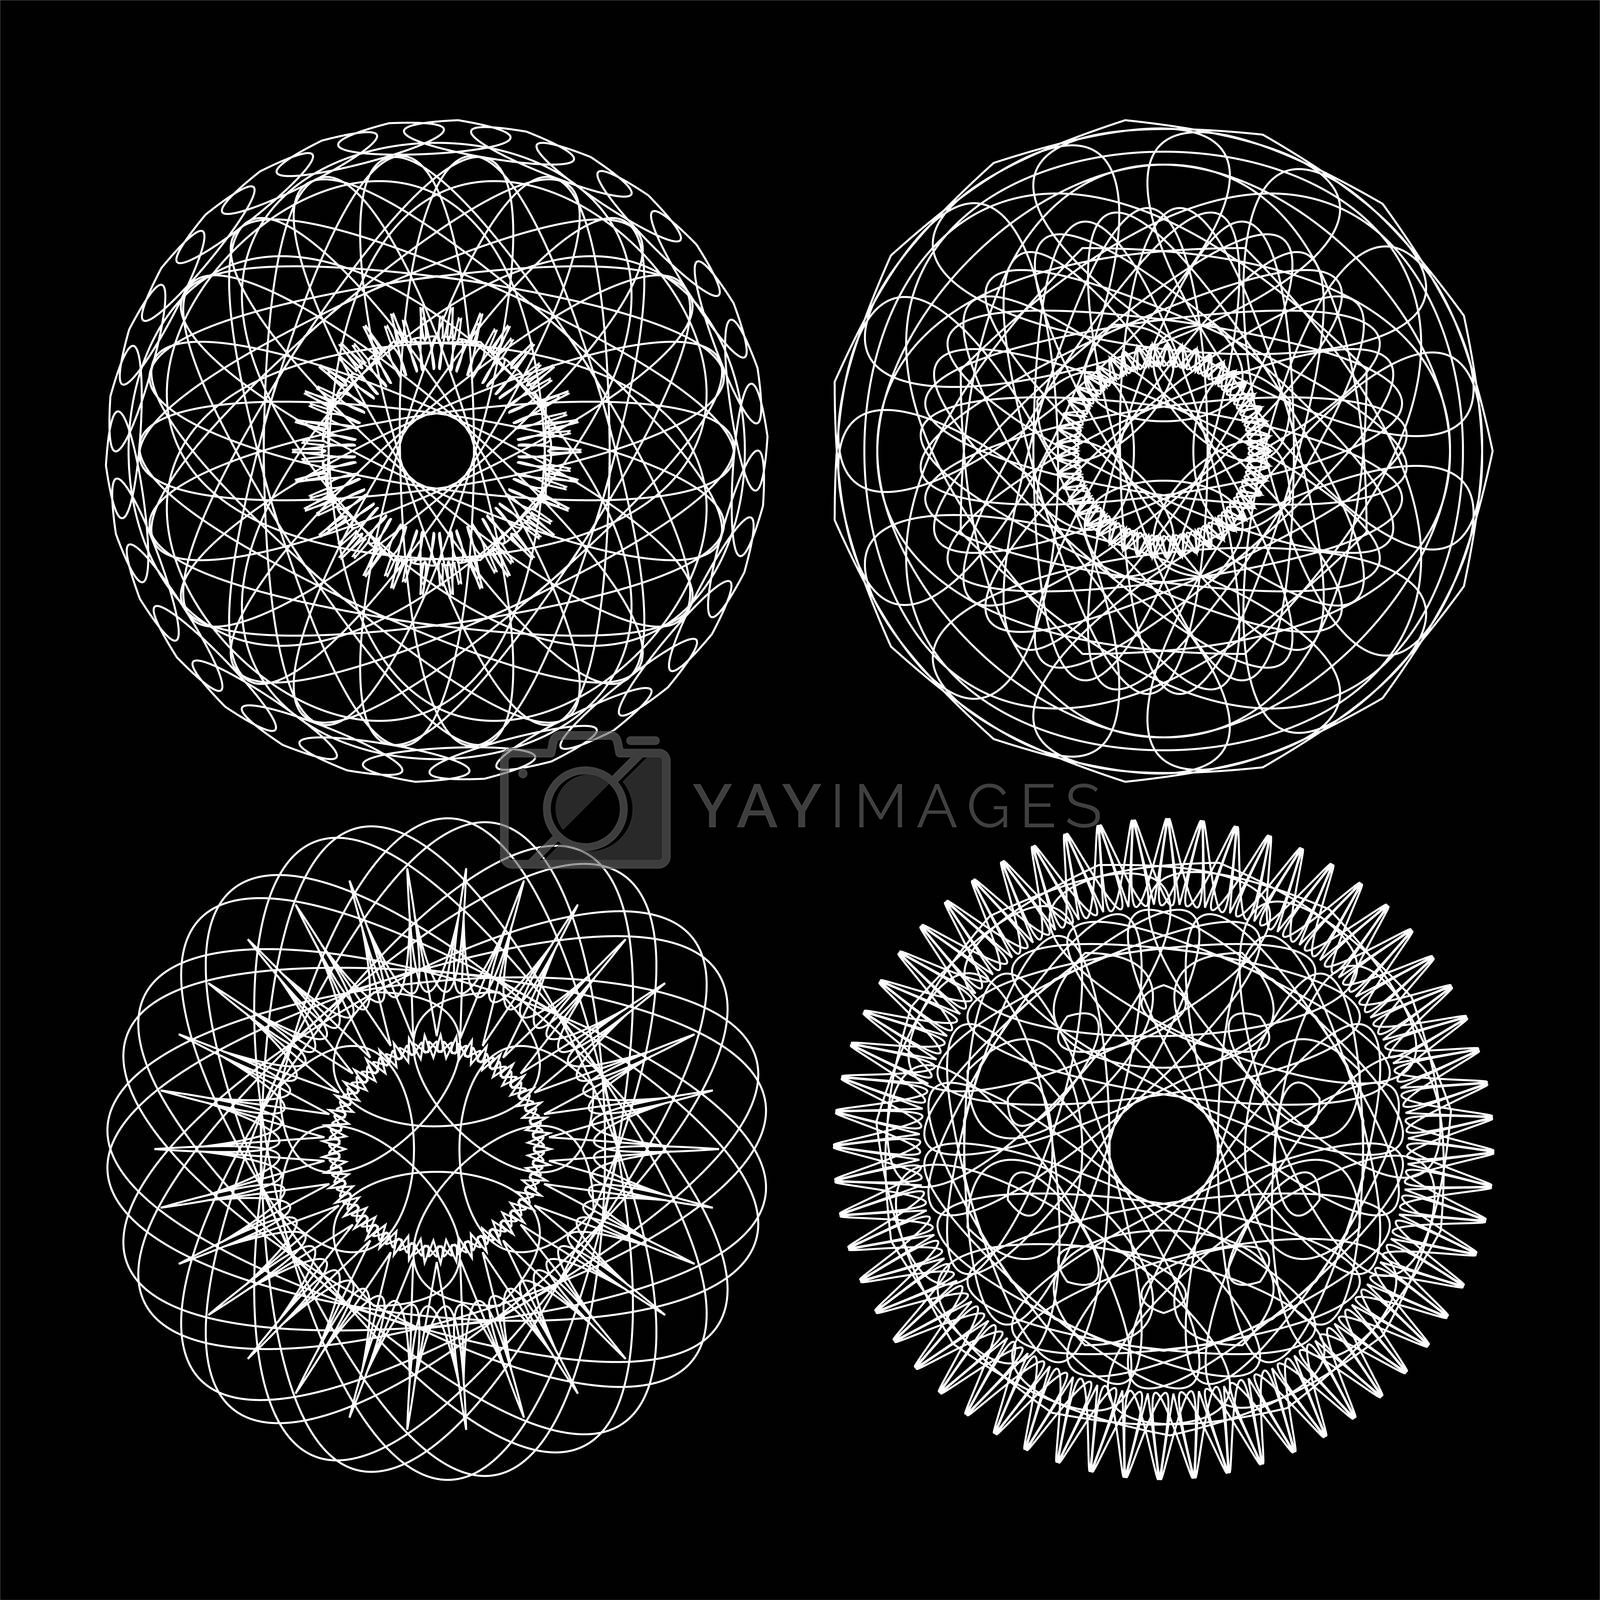 Guilloche set. Black and white circle lace ornament, round ornamental geometric pattern